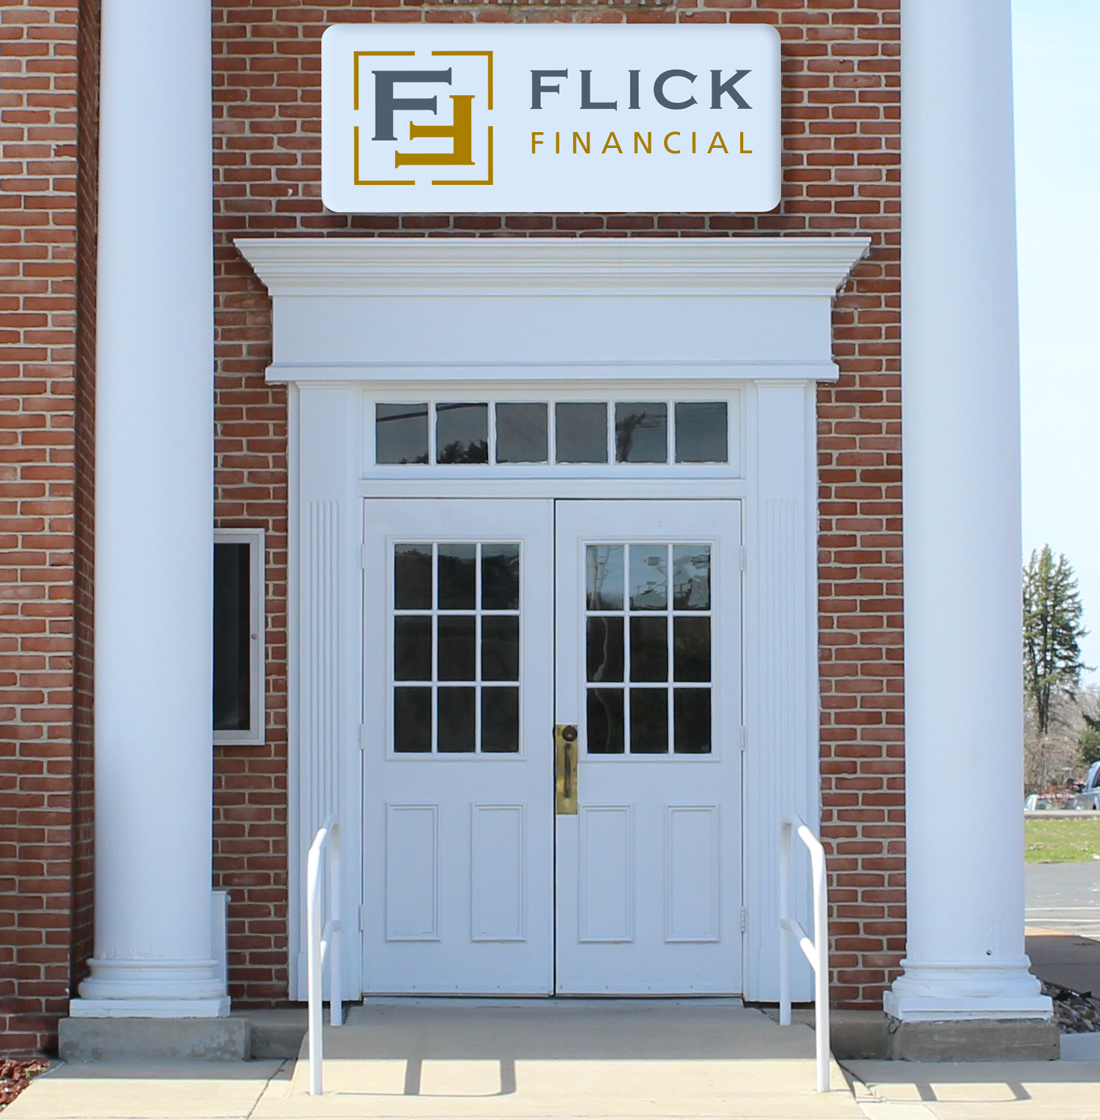 Flick_Financial_Offices